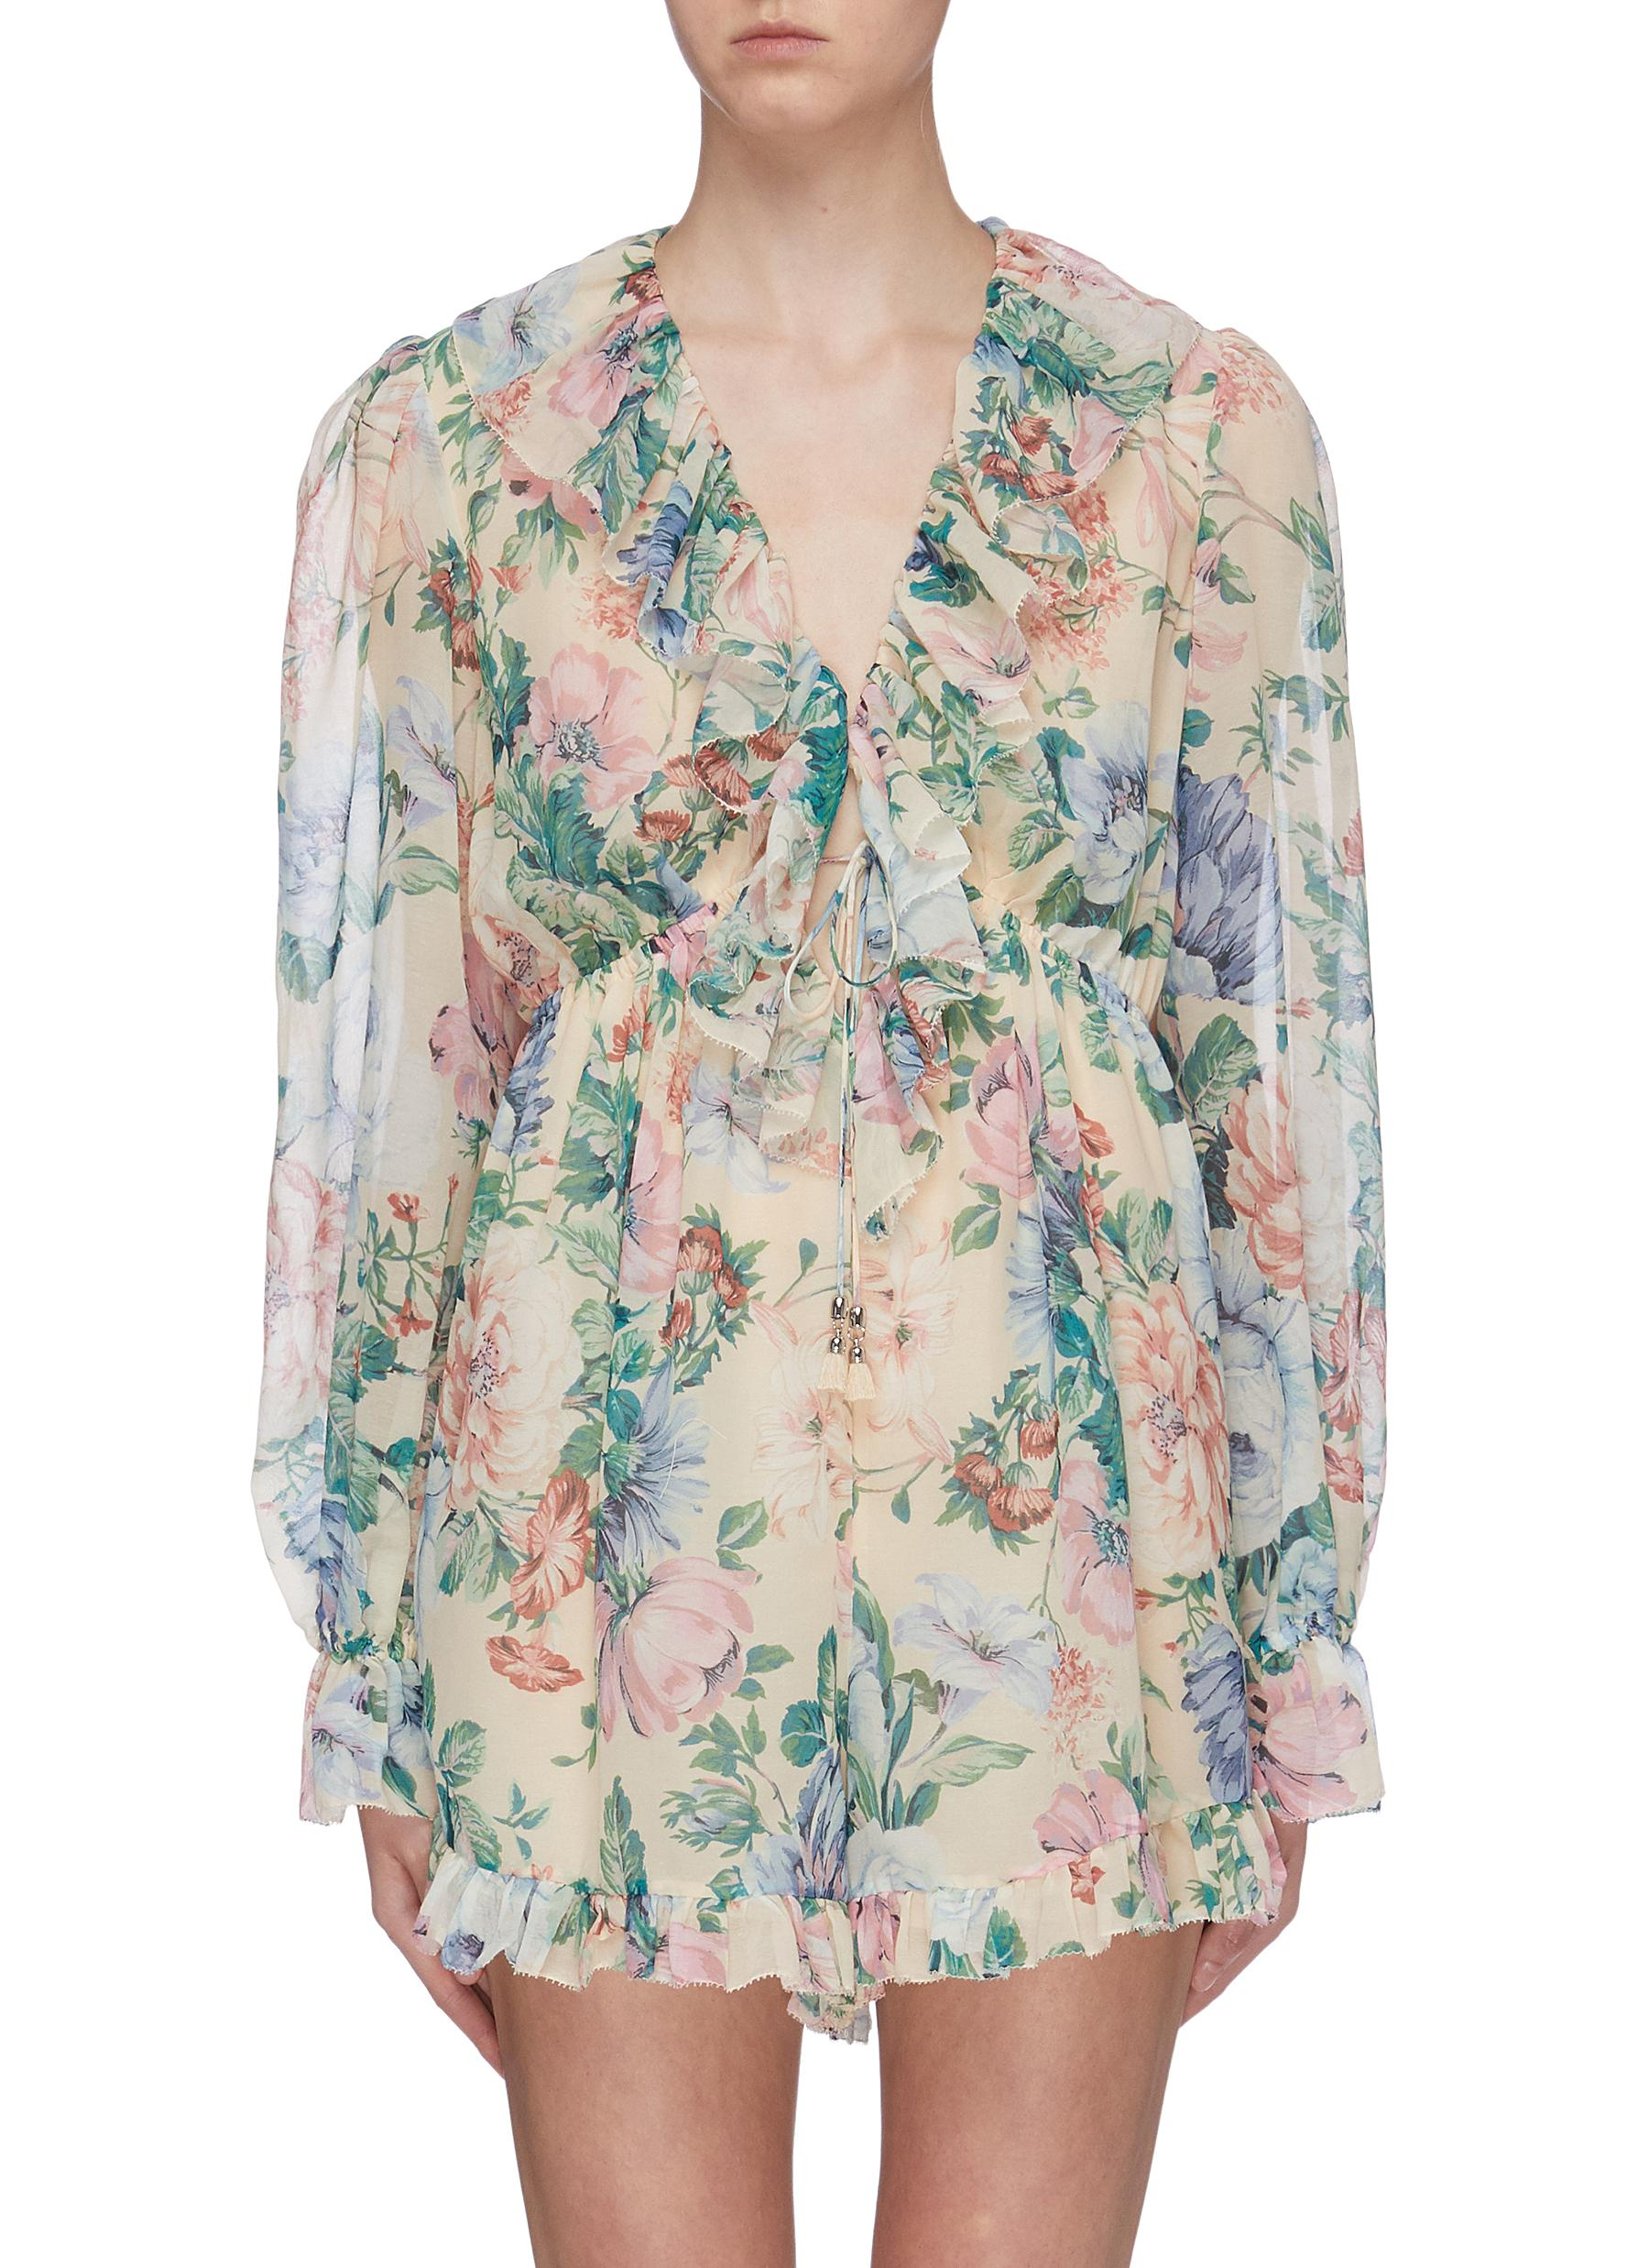 Verity ruffle drawstring floral print chiffon rompers by Zimmermann